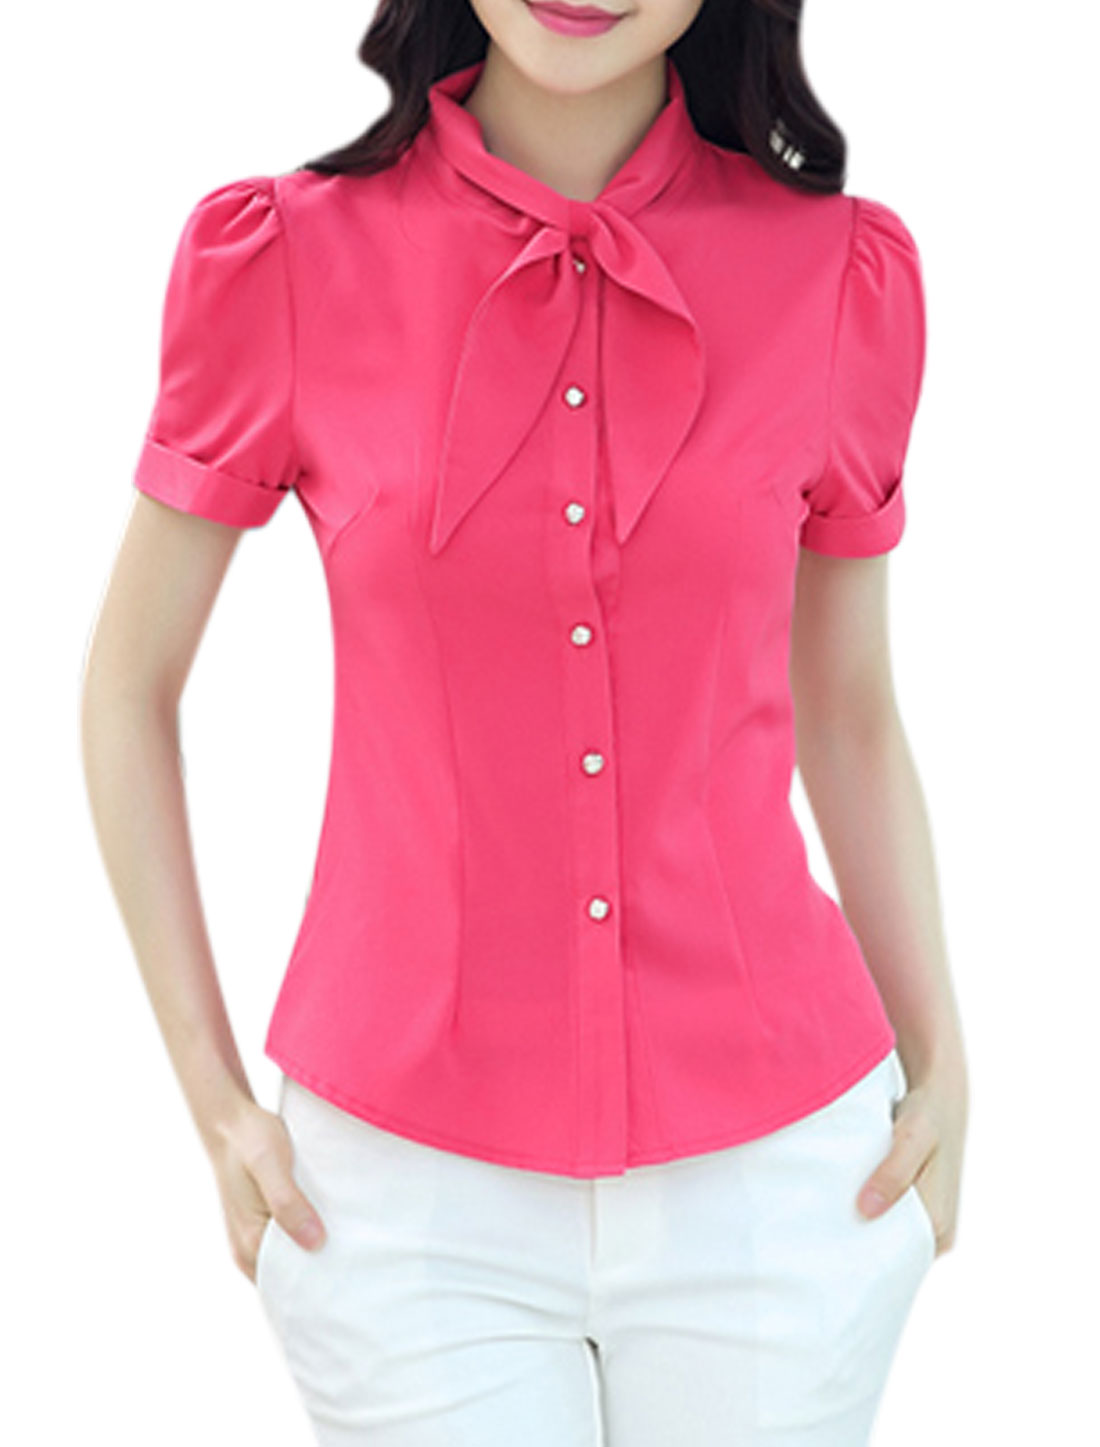 Lady Tie Neck Short Sleeves Button Closure Rolled Cuffs Shirt Fuchsia M